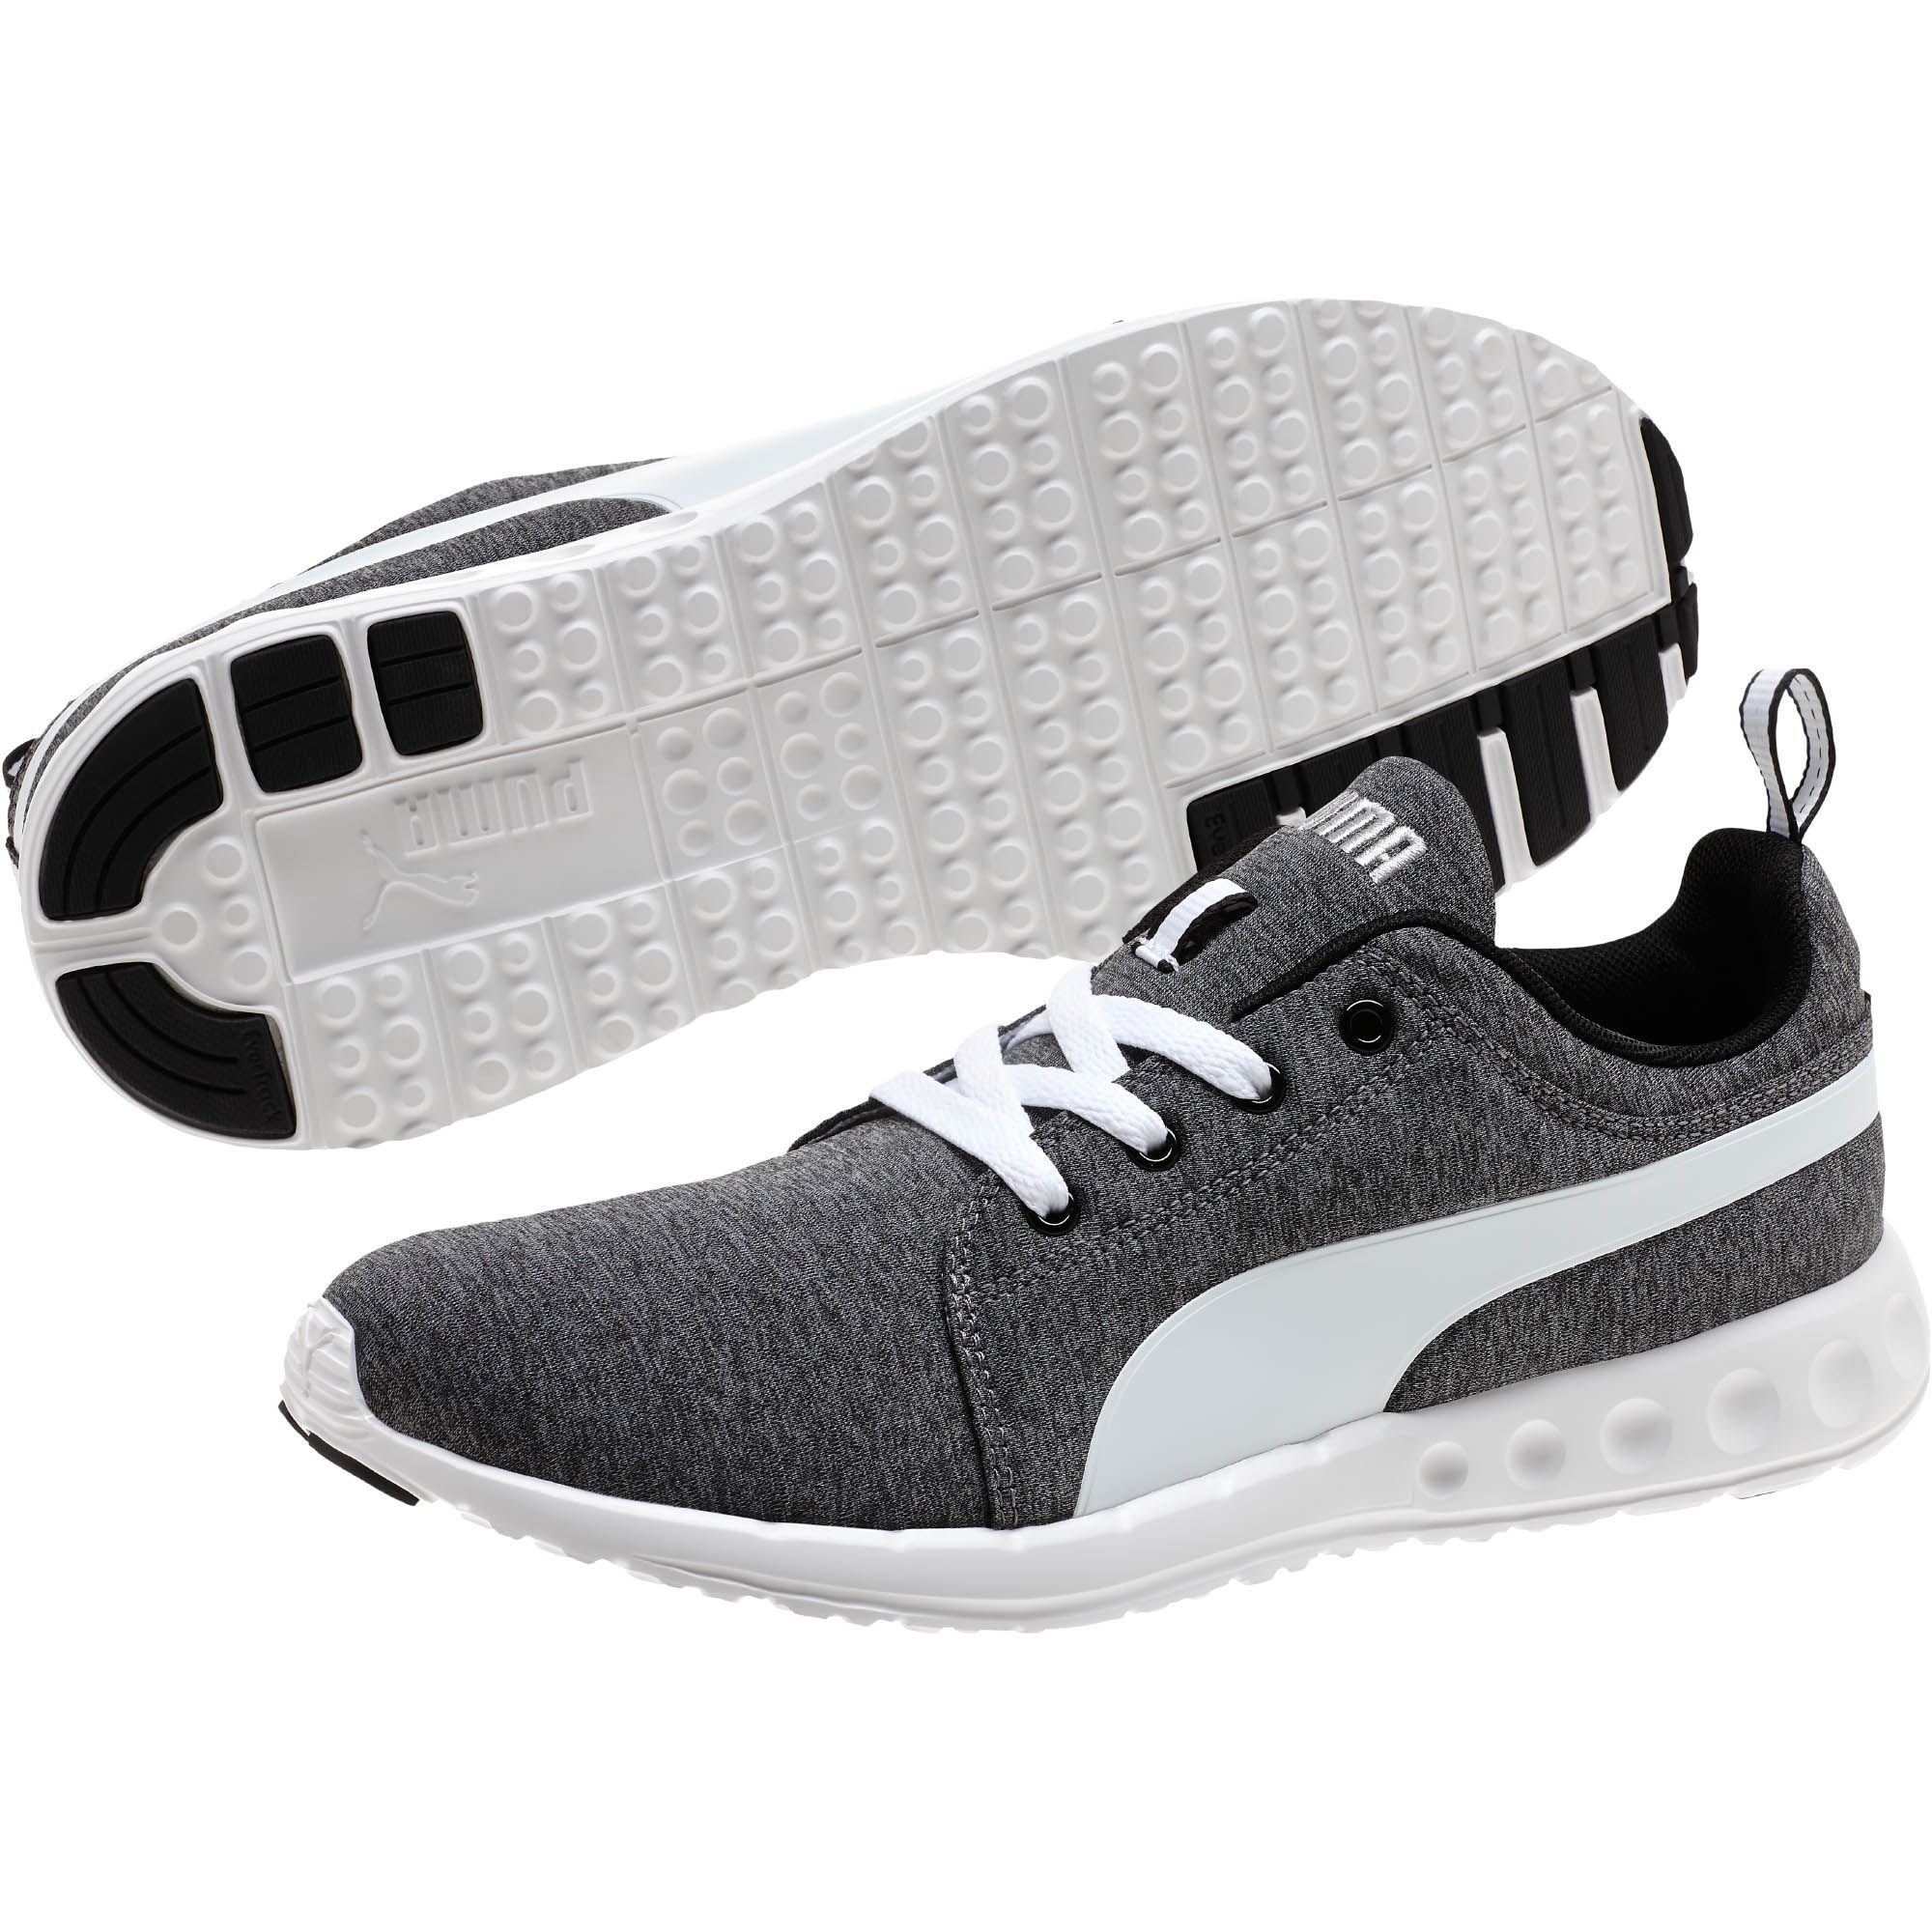 b4a644552746a6 Lyst - PUMA Carson Runner Heather Men s Running Shoes in Gray for Men